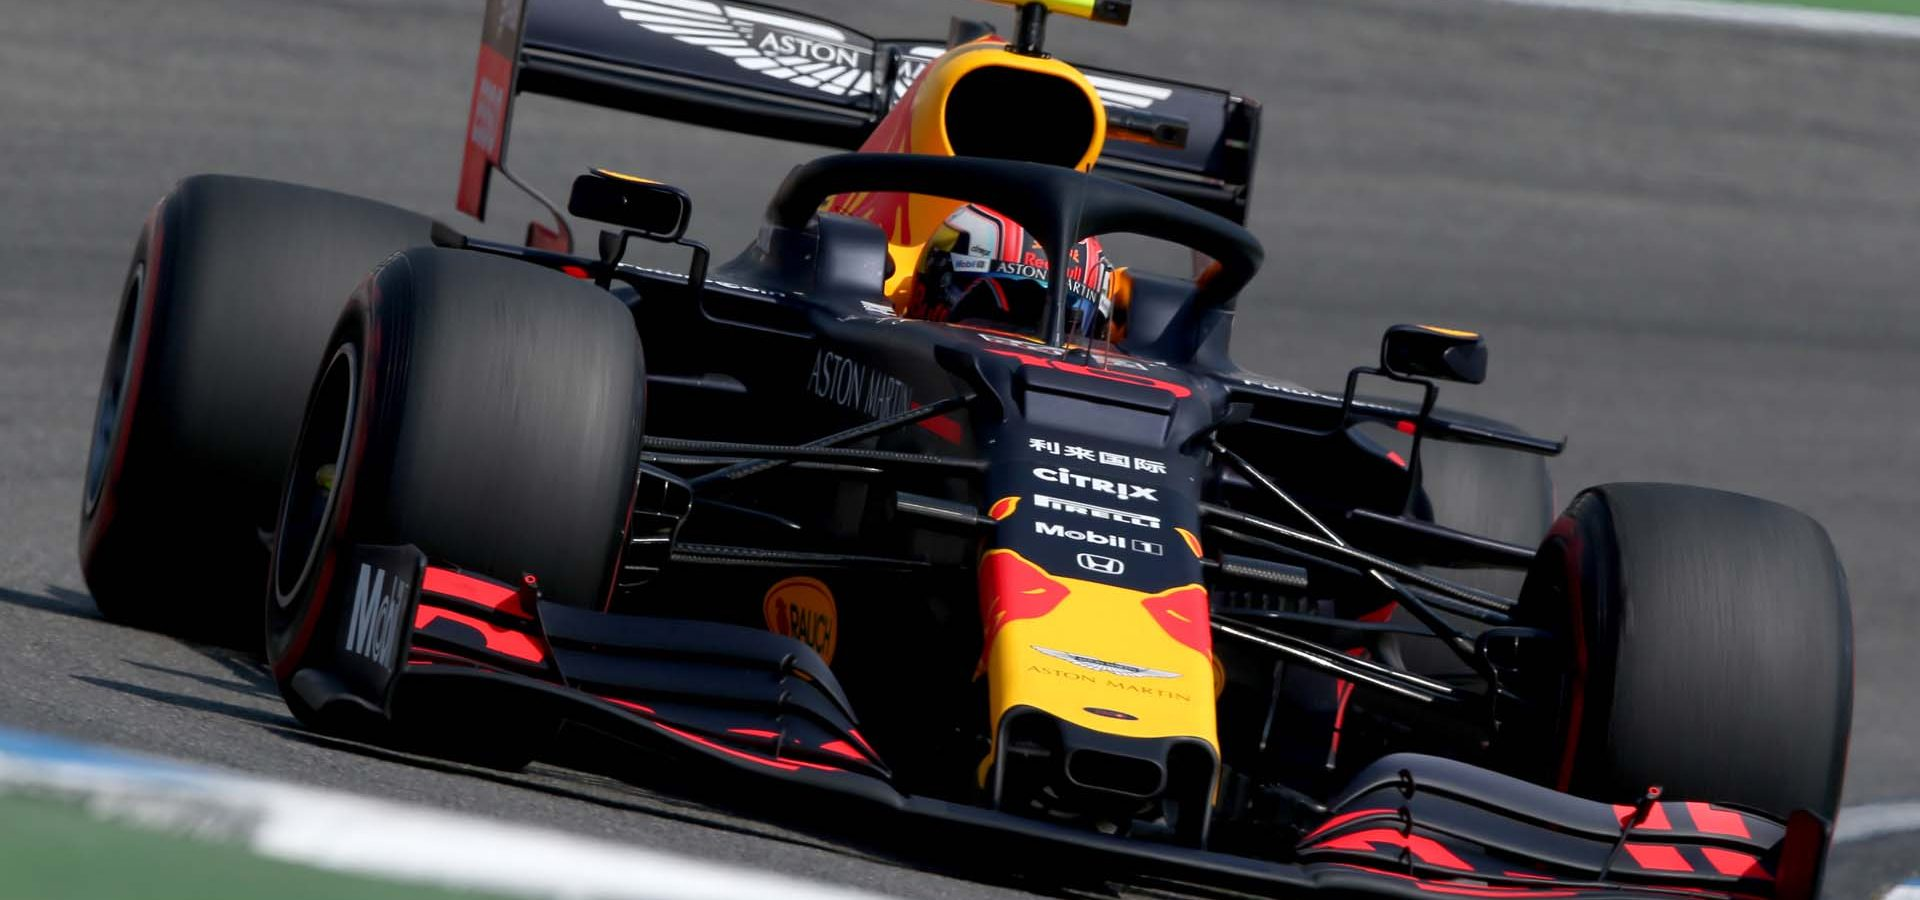 HOCKENHEIM, GERMANY - JULY 26: Pierre Gasly of France driving the (10) Aston Martin Red Bull Racing RB15 on track during practice for the F1 Grand Prix of Germany at Hockenheimring on July 26, 2019 in Hockenheim, Germany. (Photo by Charles Coates/Getty Images) // Getty Images / Red Bull Content Pool  // AP-212MN8PE12111 // Usage for editorial use only // Please go to www.redbullcontentpool.com for further information. //